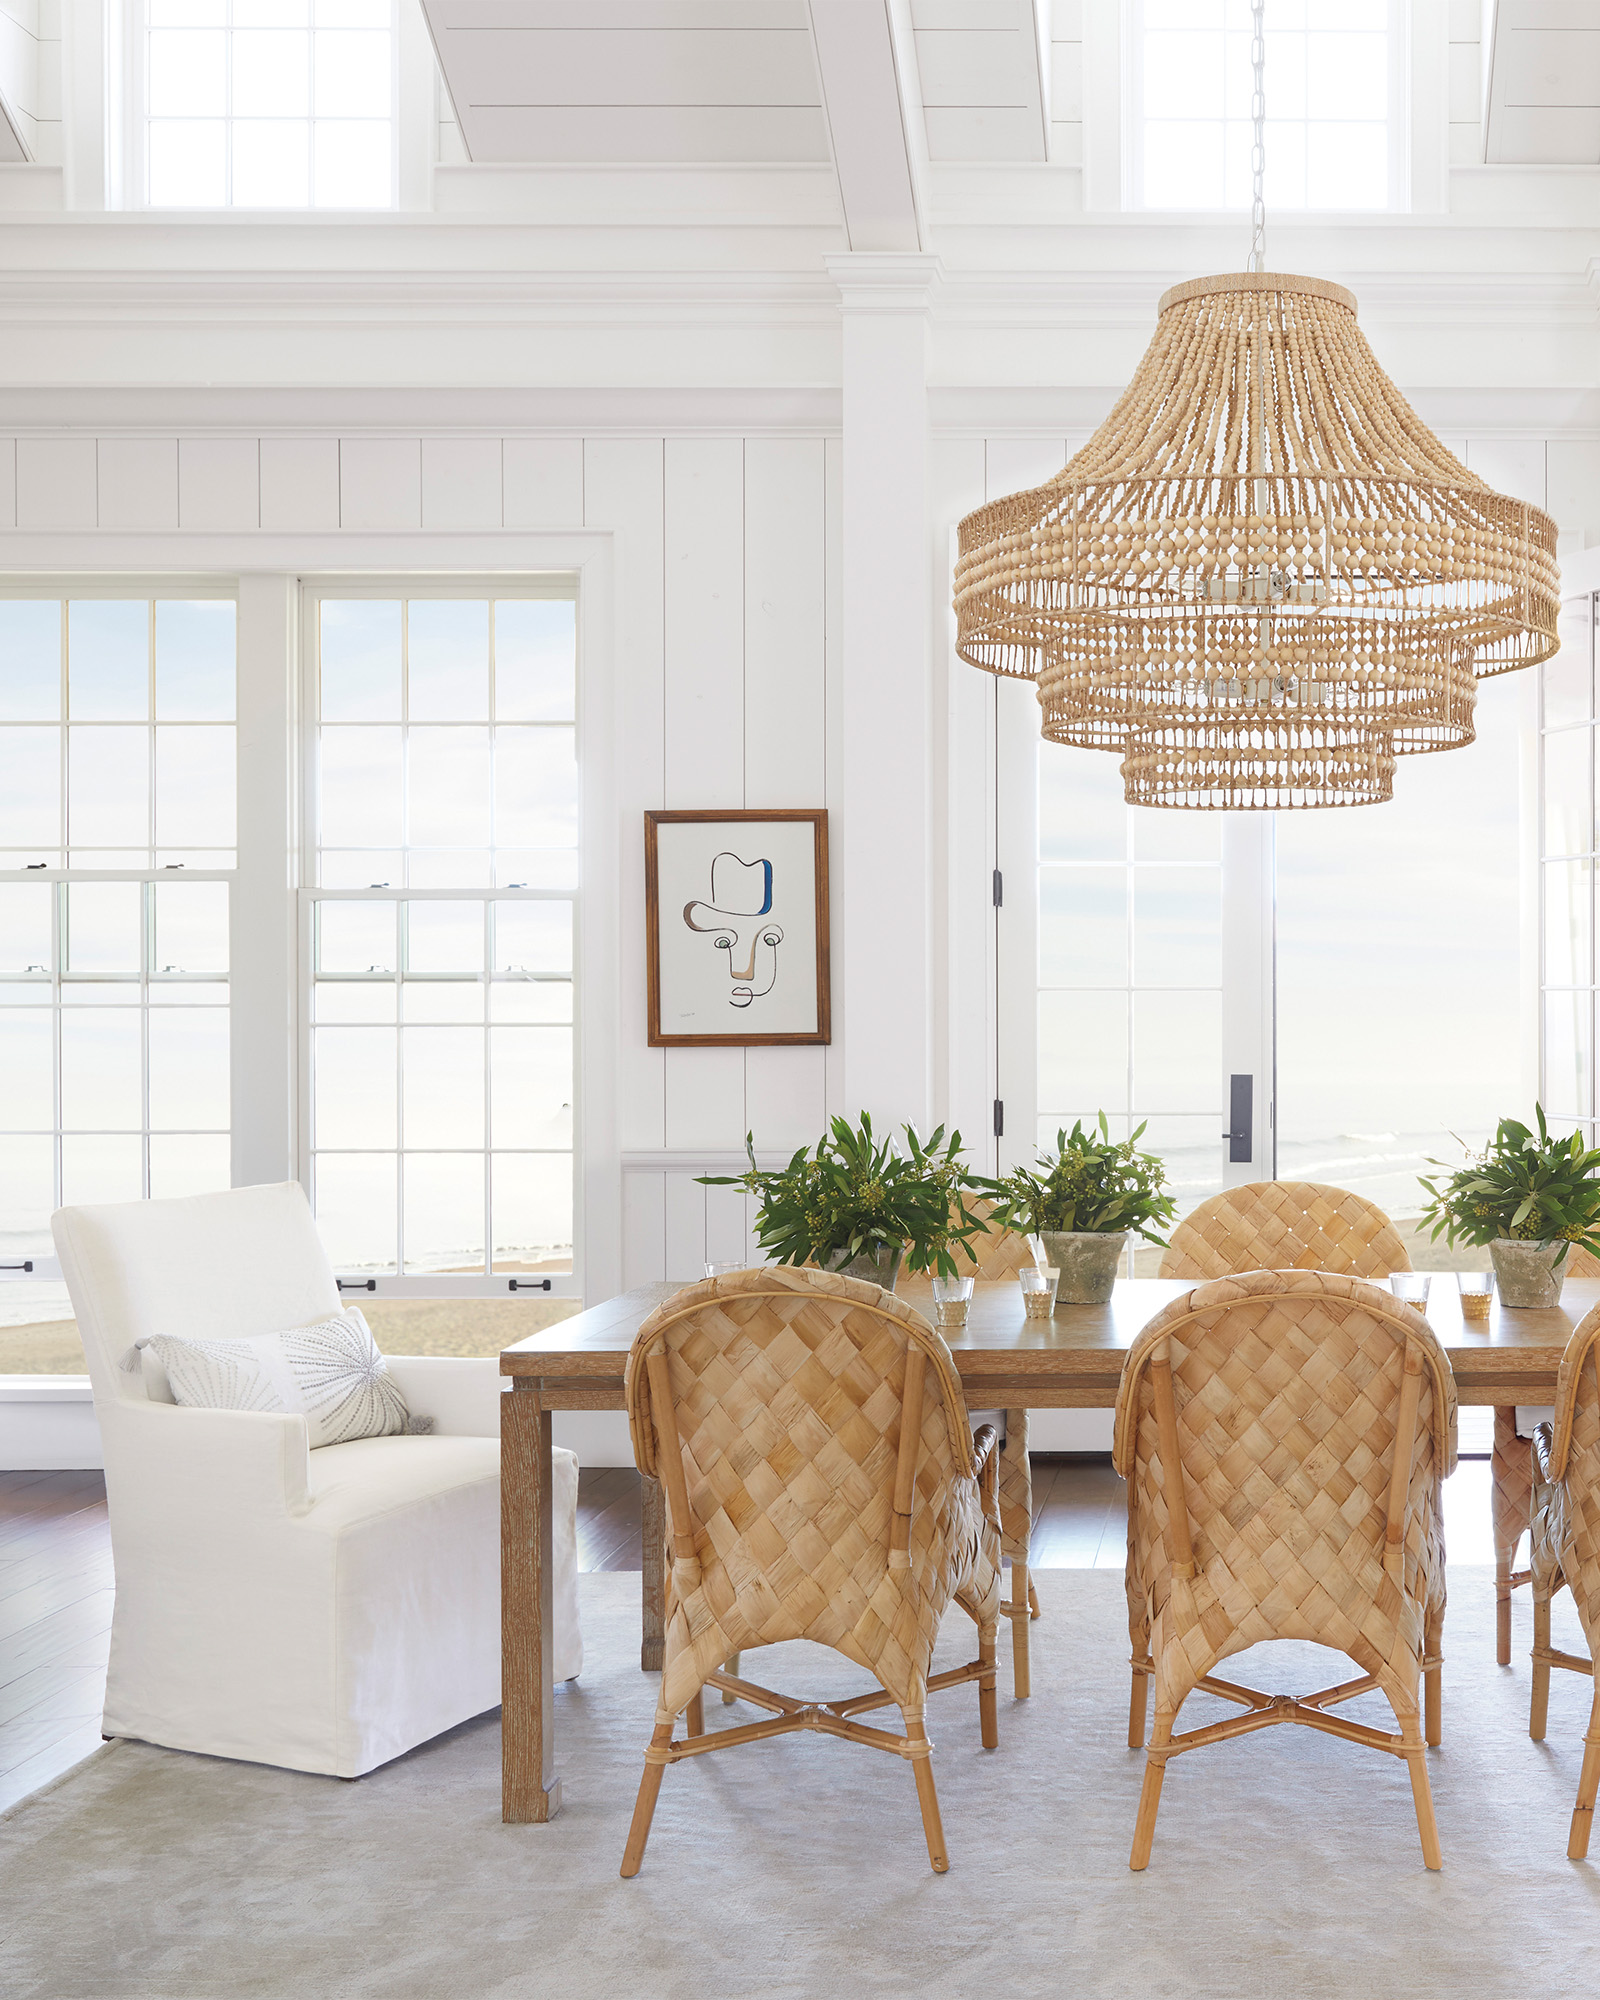 Coastal chic in a dining area with white on white decor, lofty ceilings, and natural woven texture on chandelier and chairs - Serena & Lily.